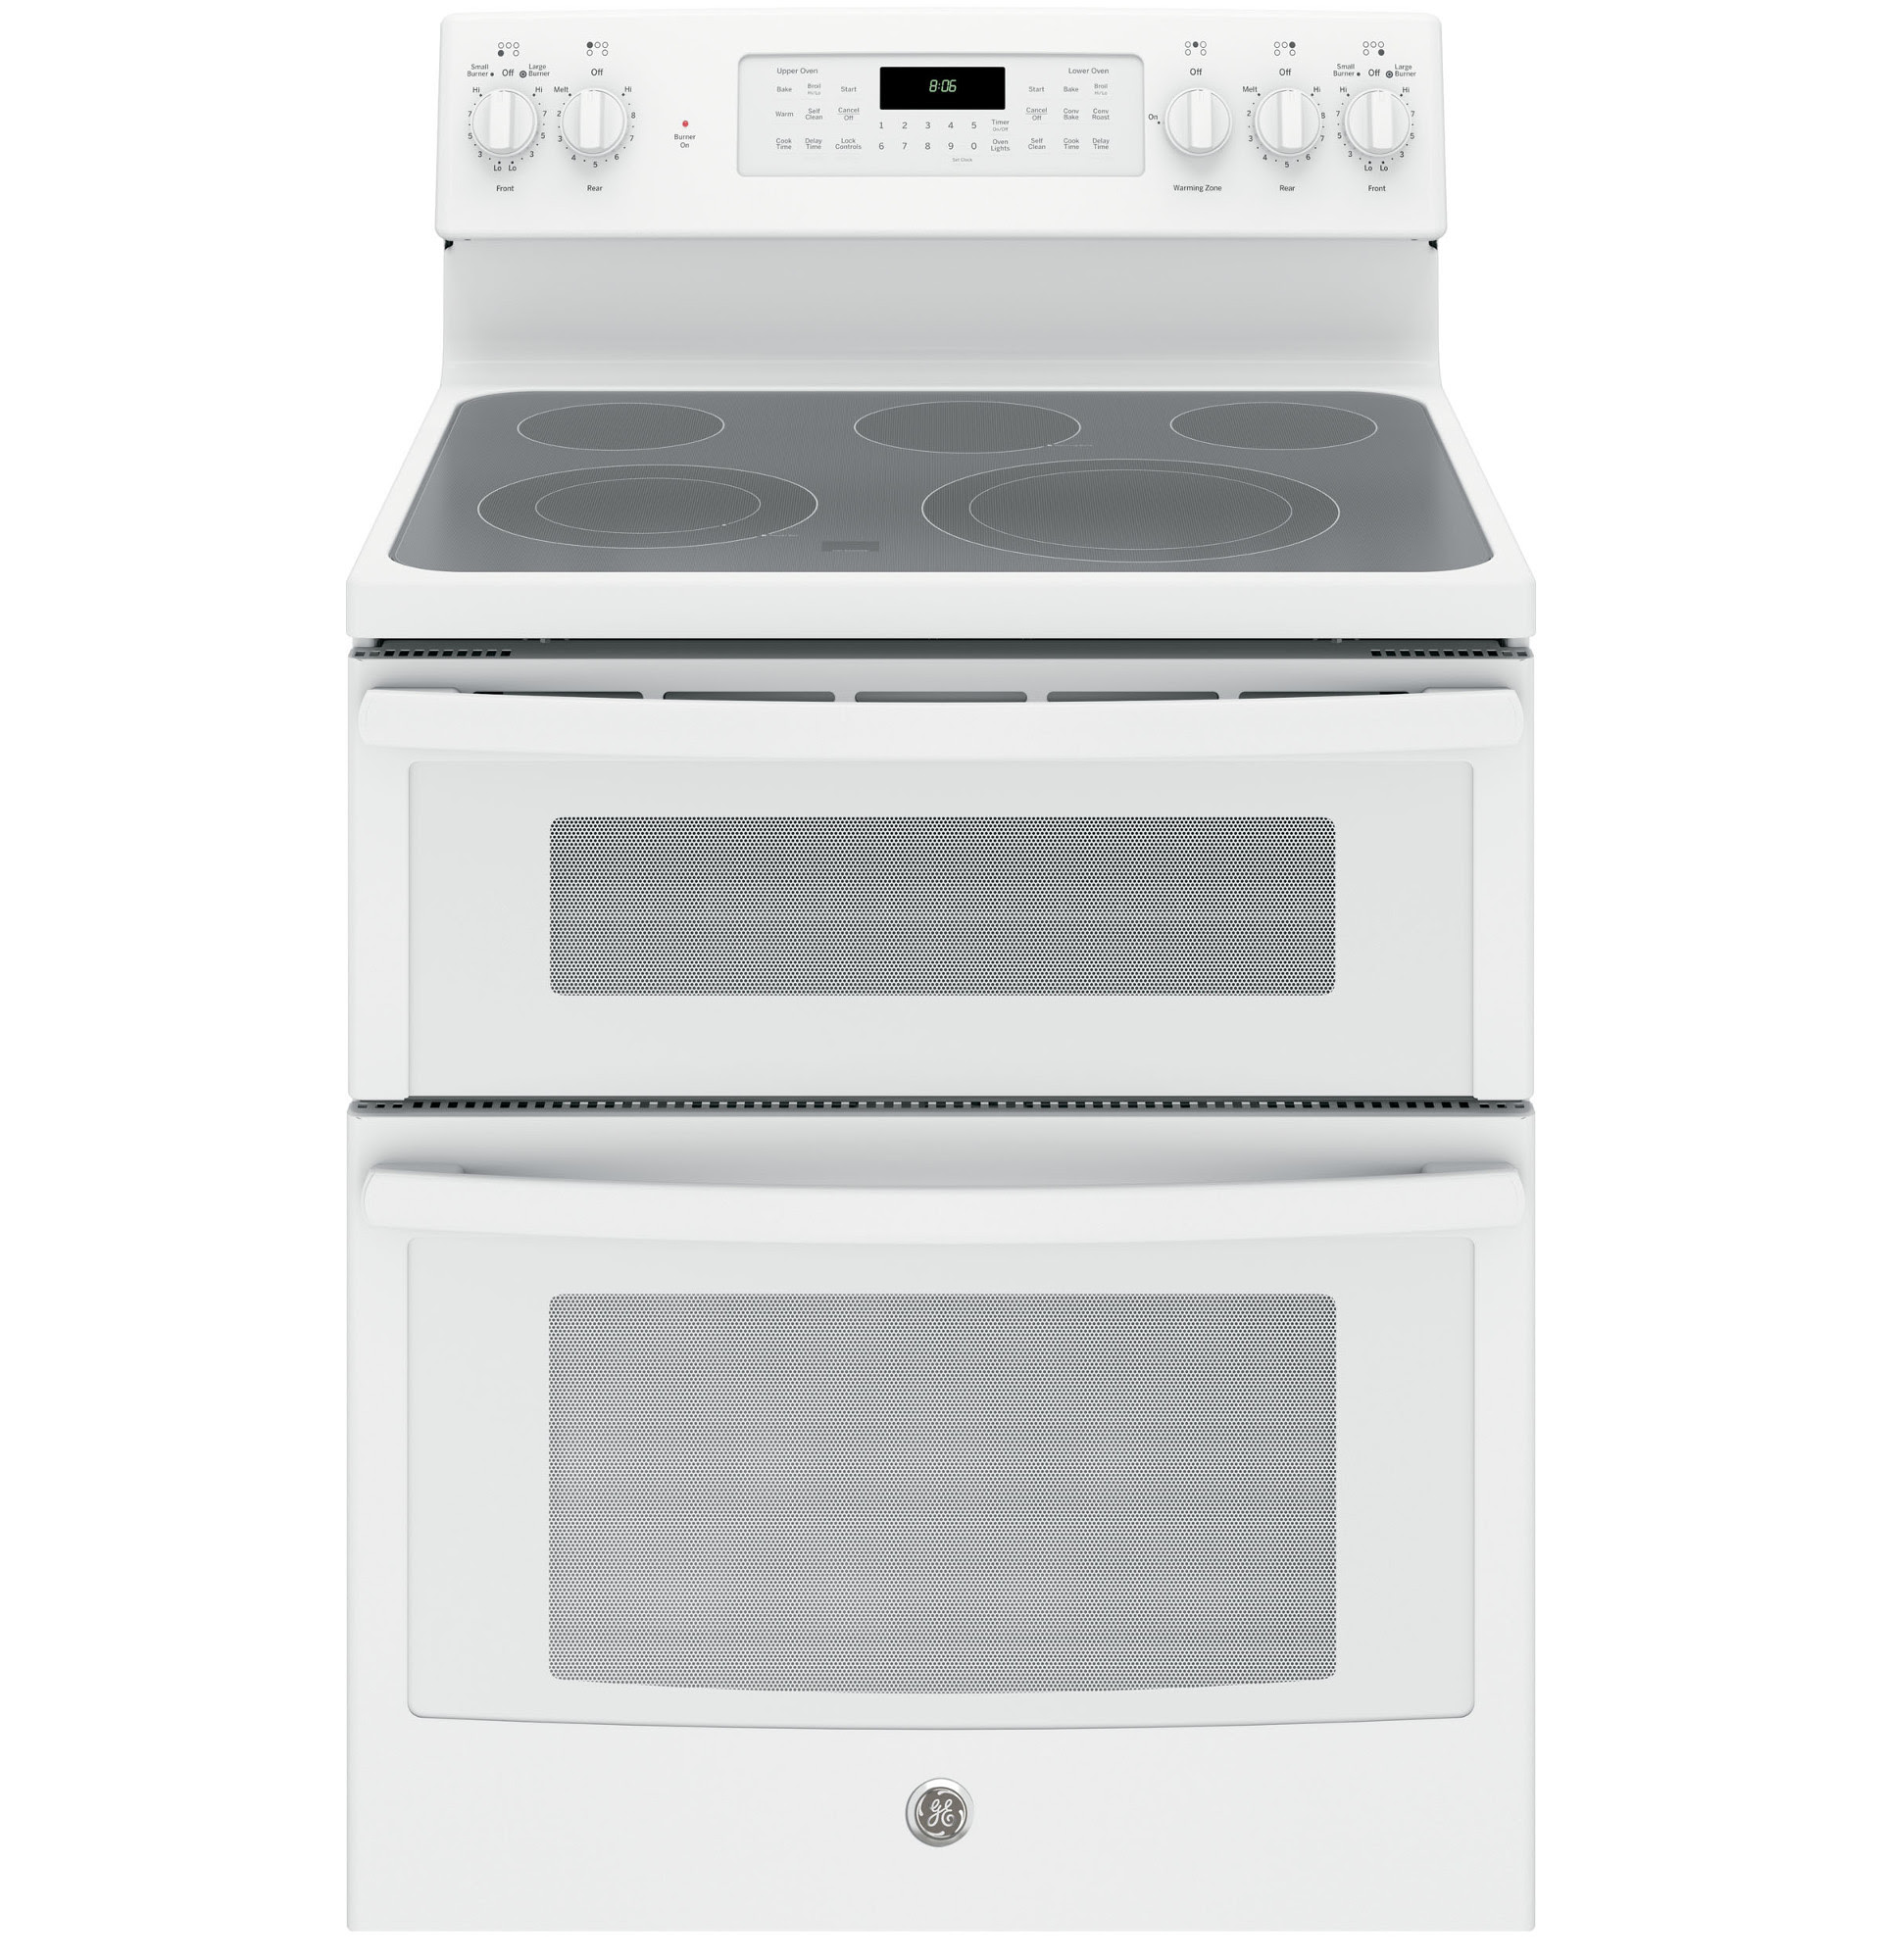 GE Appliances JB860DJWW 6 6 cu ft Freestanding Electric Double